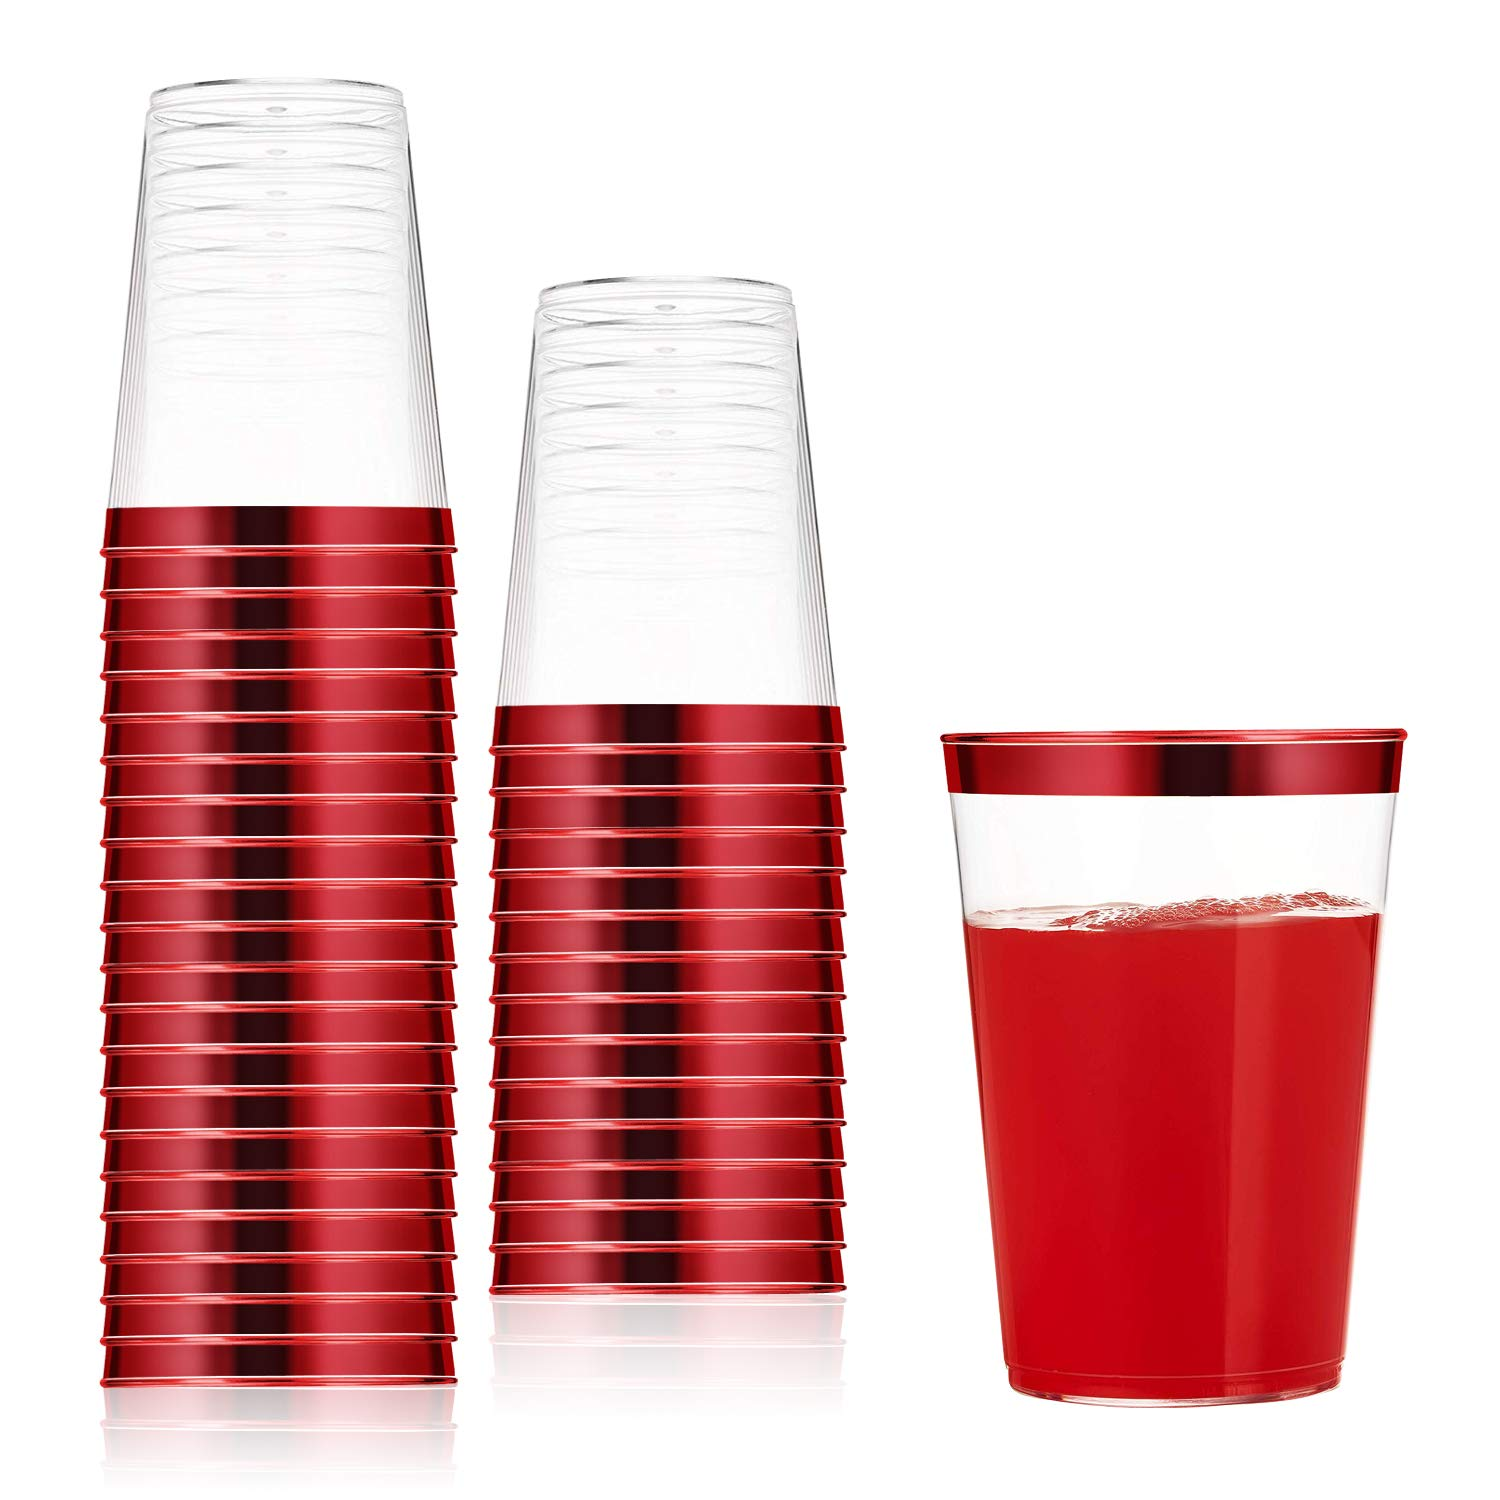 100 Count 10oz Disposable Clear Cup-Red Trim Cup/Old Fashioned Tumblers/Plastic Wedding Cups/Fancy Party Cups